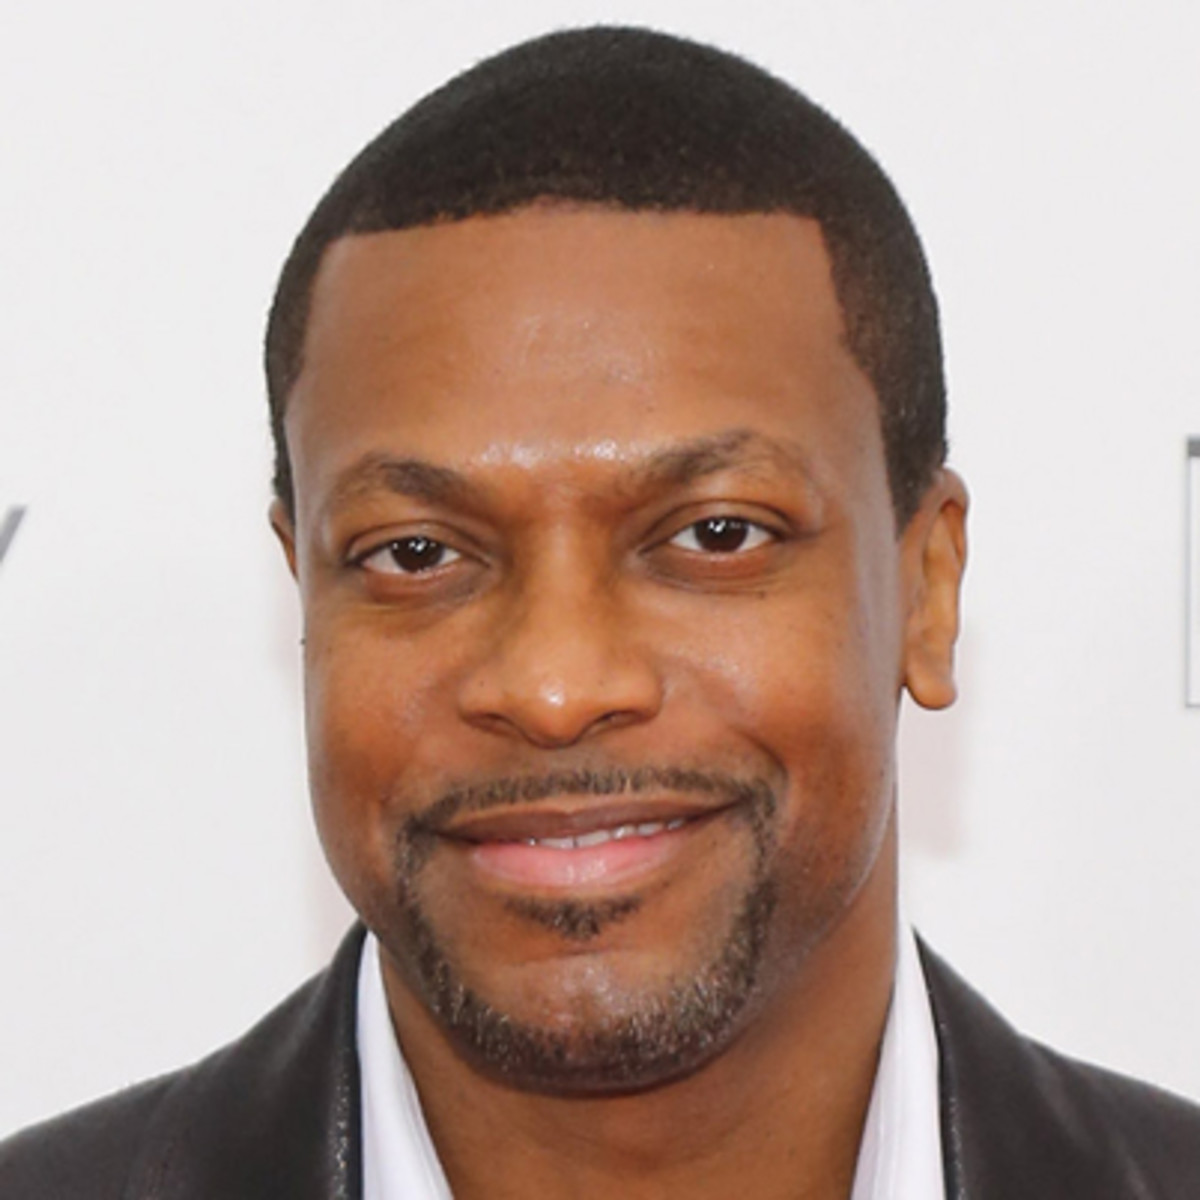 NEW YORK, NY - NOVEMBER 12:  Actor Chris Tucker attends the premiere of The Weinstein Company's SILVER LININGS PLAYBOOK, presented by Samsung Galaxy and Laura Mercier, benefiting The Tribeca Film Institute at Ziegfeld Theatre on November 12, 2012 in New York City.  (Photo by Neilson Barnard/Getty Images for The Weinstein Company)